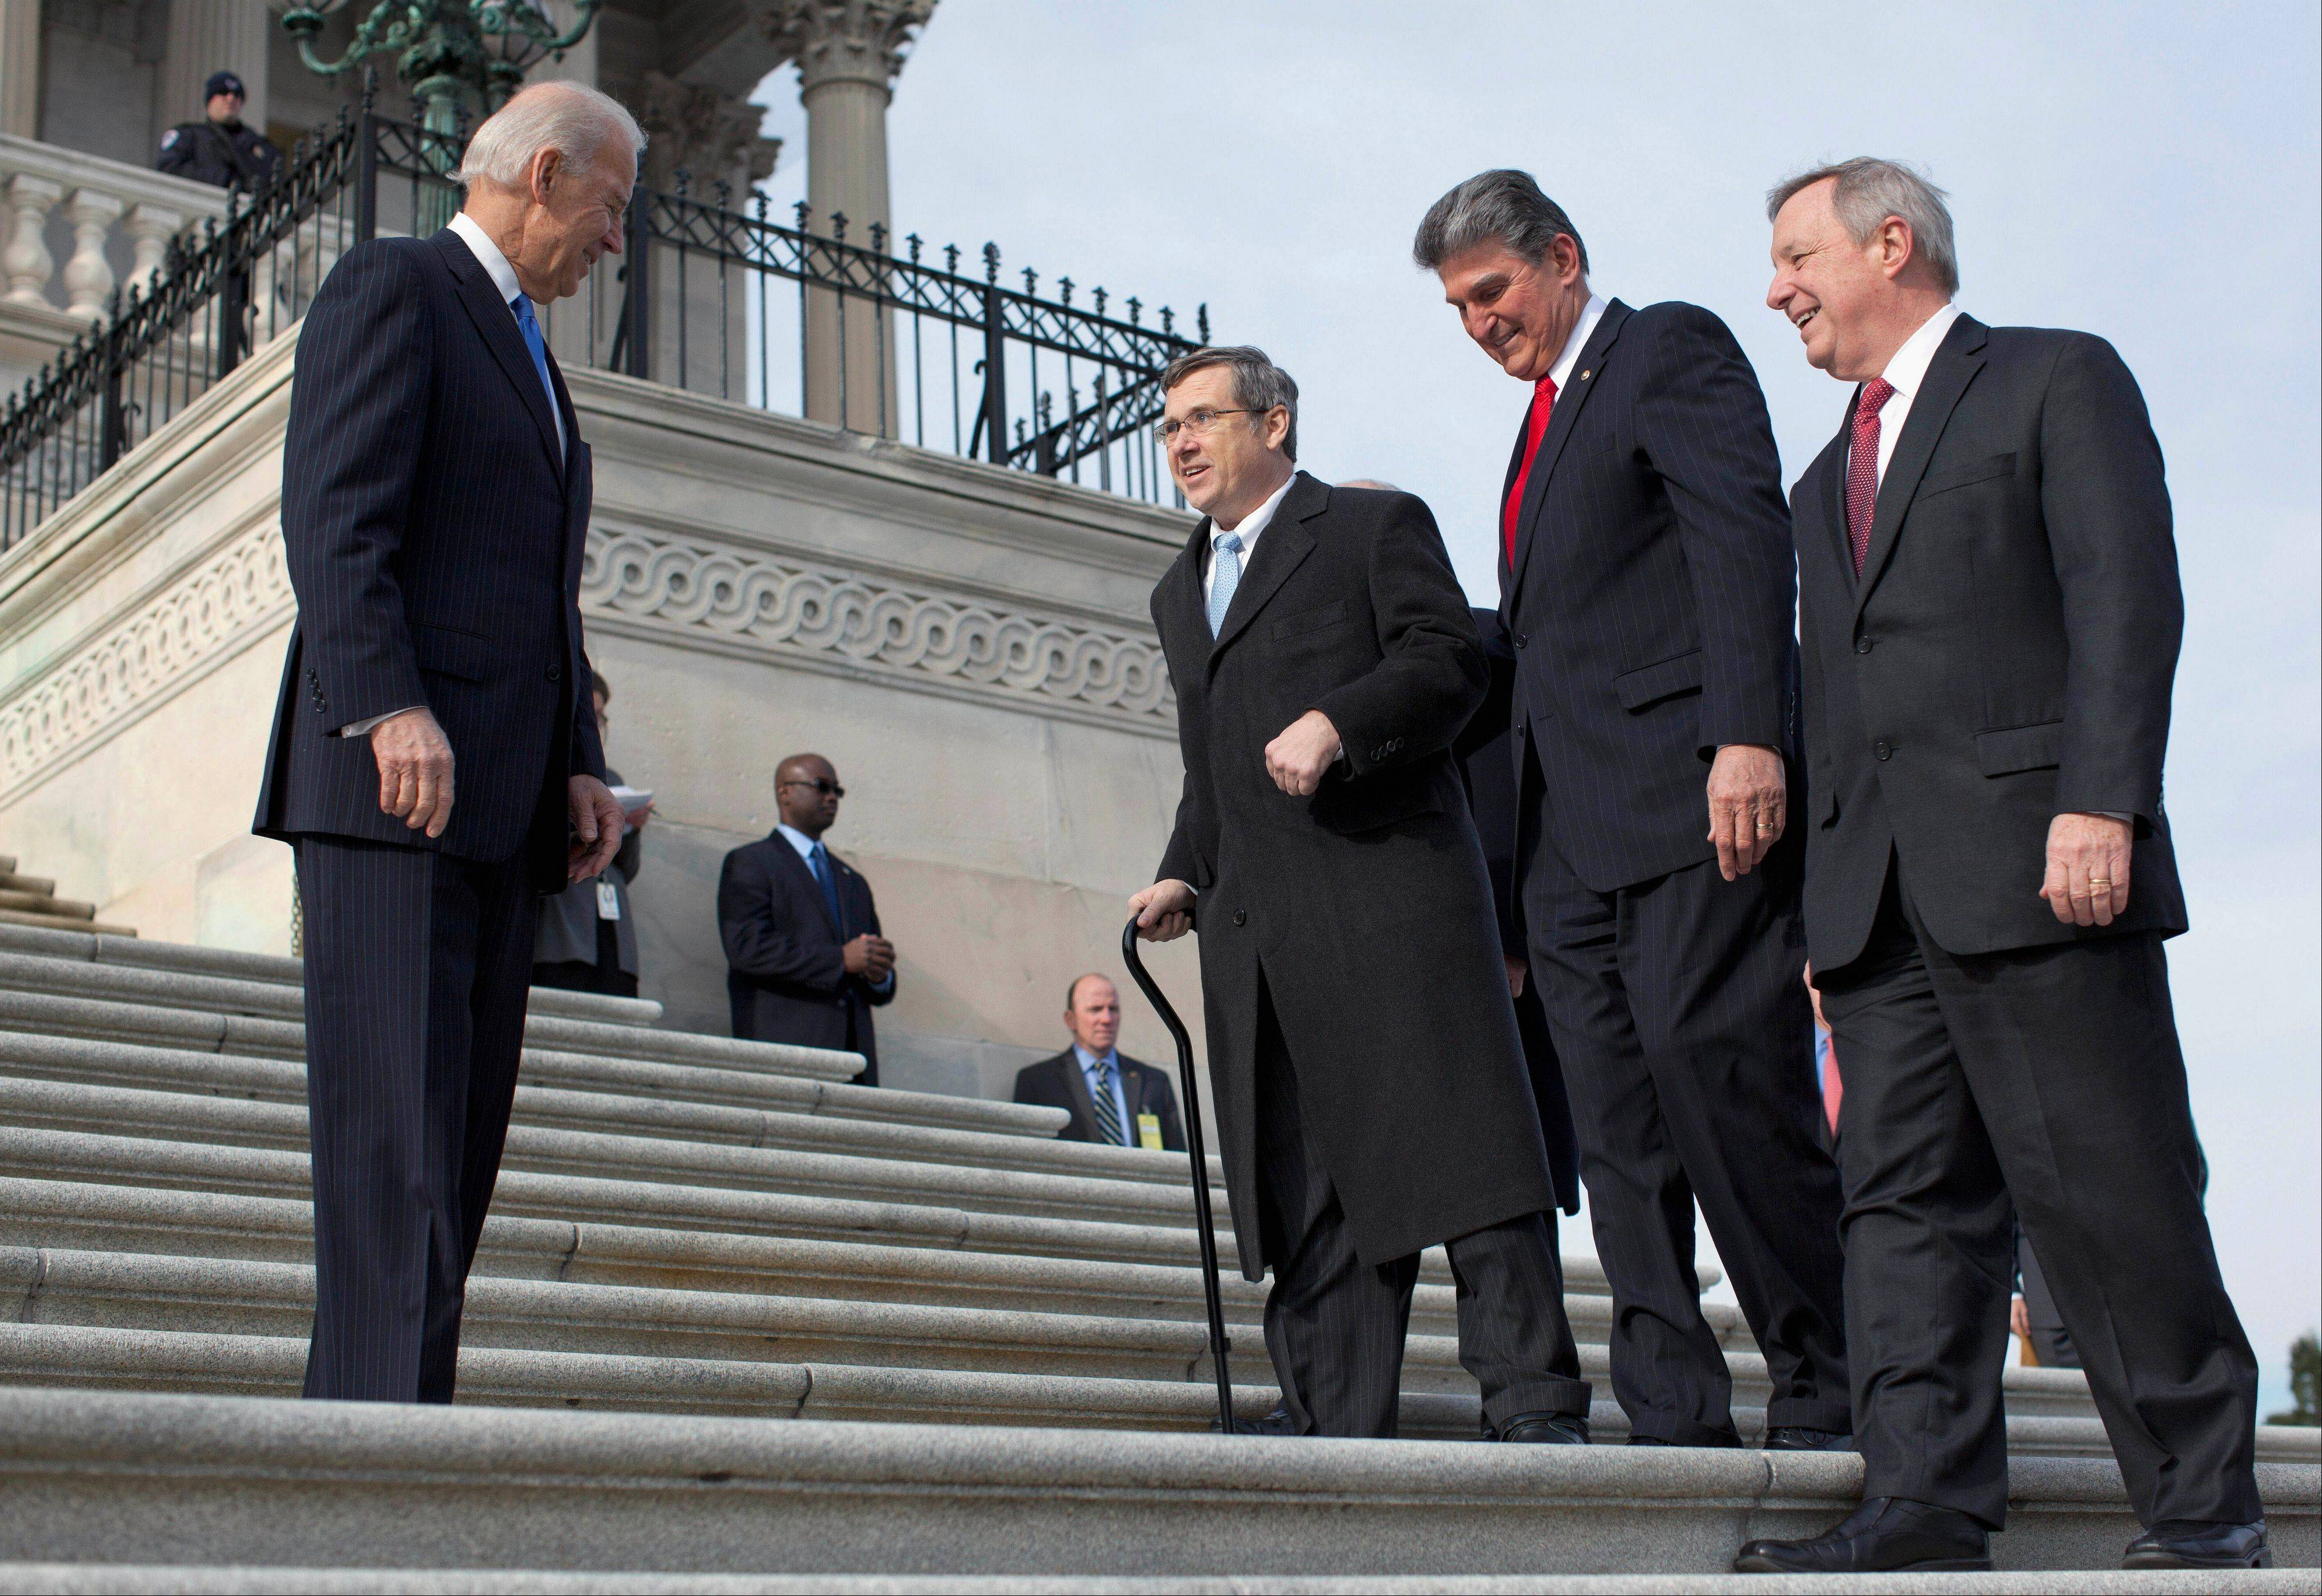 In this Jan. 3, 2013 file photo, Vice President Joe Biden watches at left as Sen. Mark Kirk, an Illinois Republican, second from left, accompanied by Sen. Joe Manchin, a West Virginia Democrat, second from right, and Senate Majority Whip Richard Durbin, an Illinois Democrat, right, walk the steps to the Senate door of the Capitol building in Washington a year after Kirk suffered a stroke. The two Illinois senators from opposing parties have worked together cordially since Kirk won President Barack Obama's former Senate seat in 2010. But the relationship has seemed to reach a new level after Kirk's stroke.